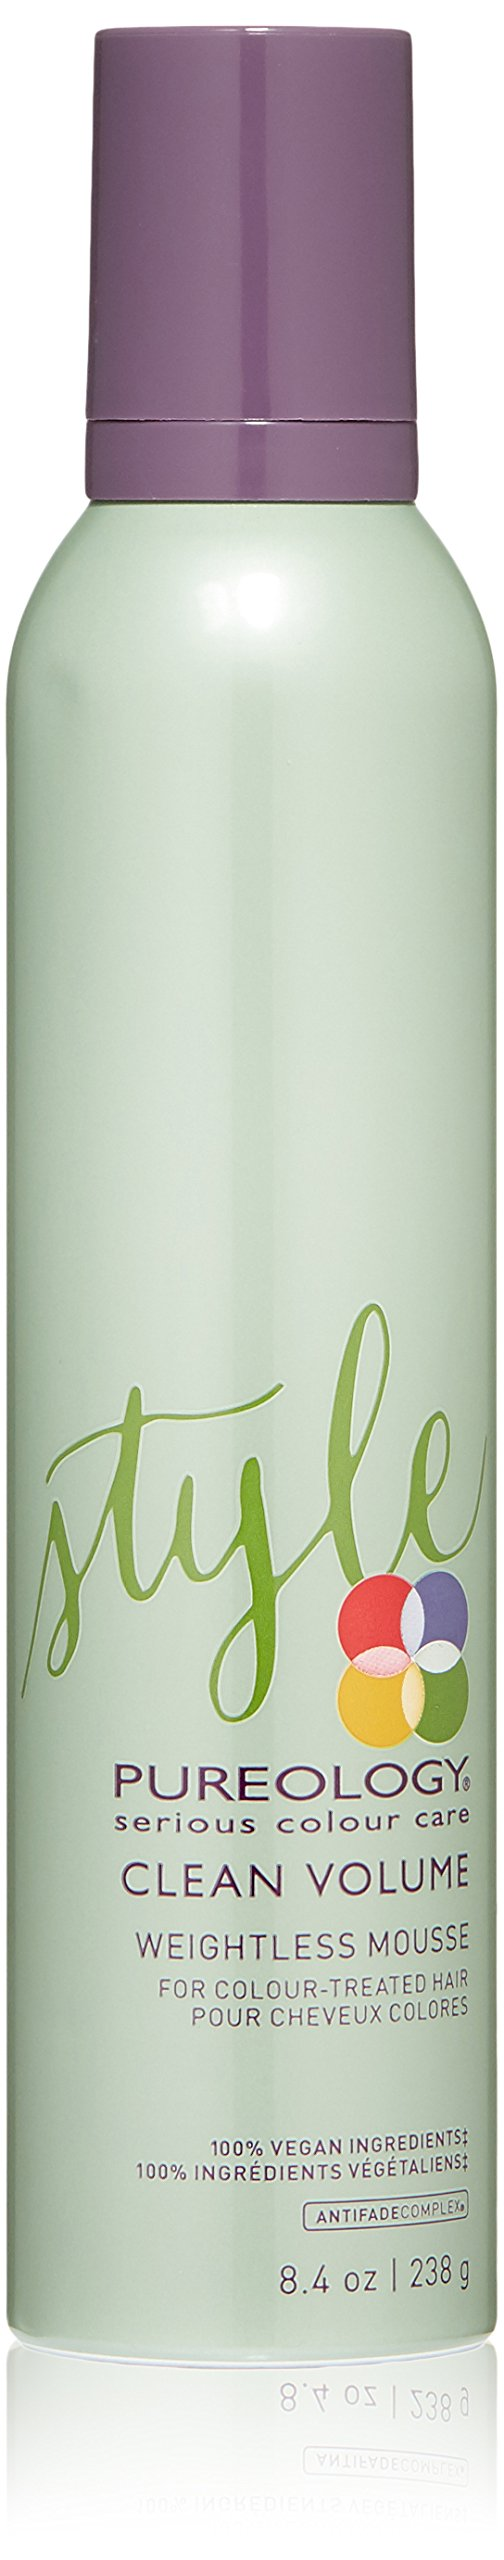 Pureology Clean Volume Weightless Mousse, 8.4 oz by Pureology